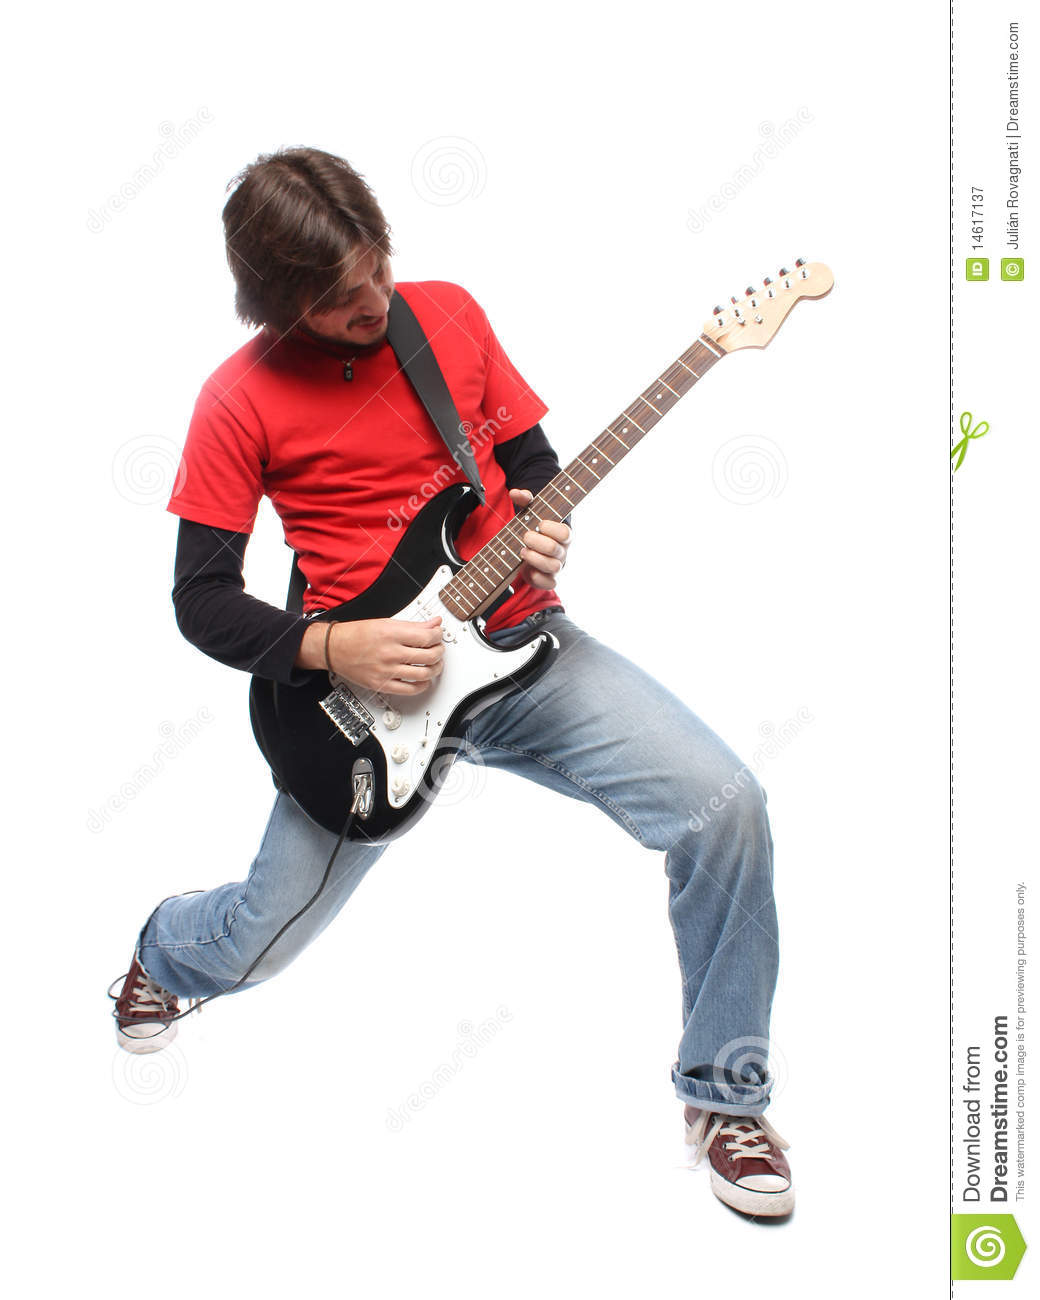 Rock and roll guitar player